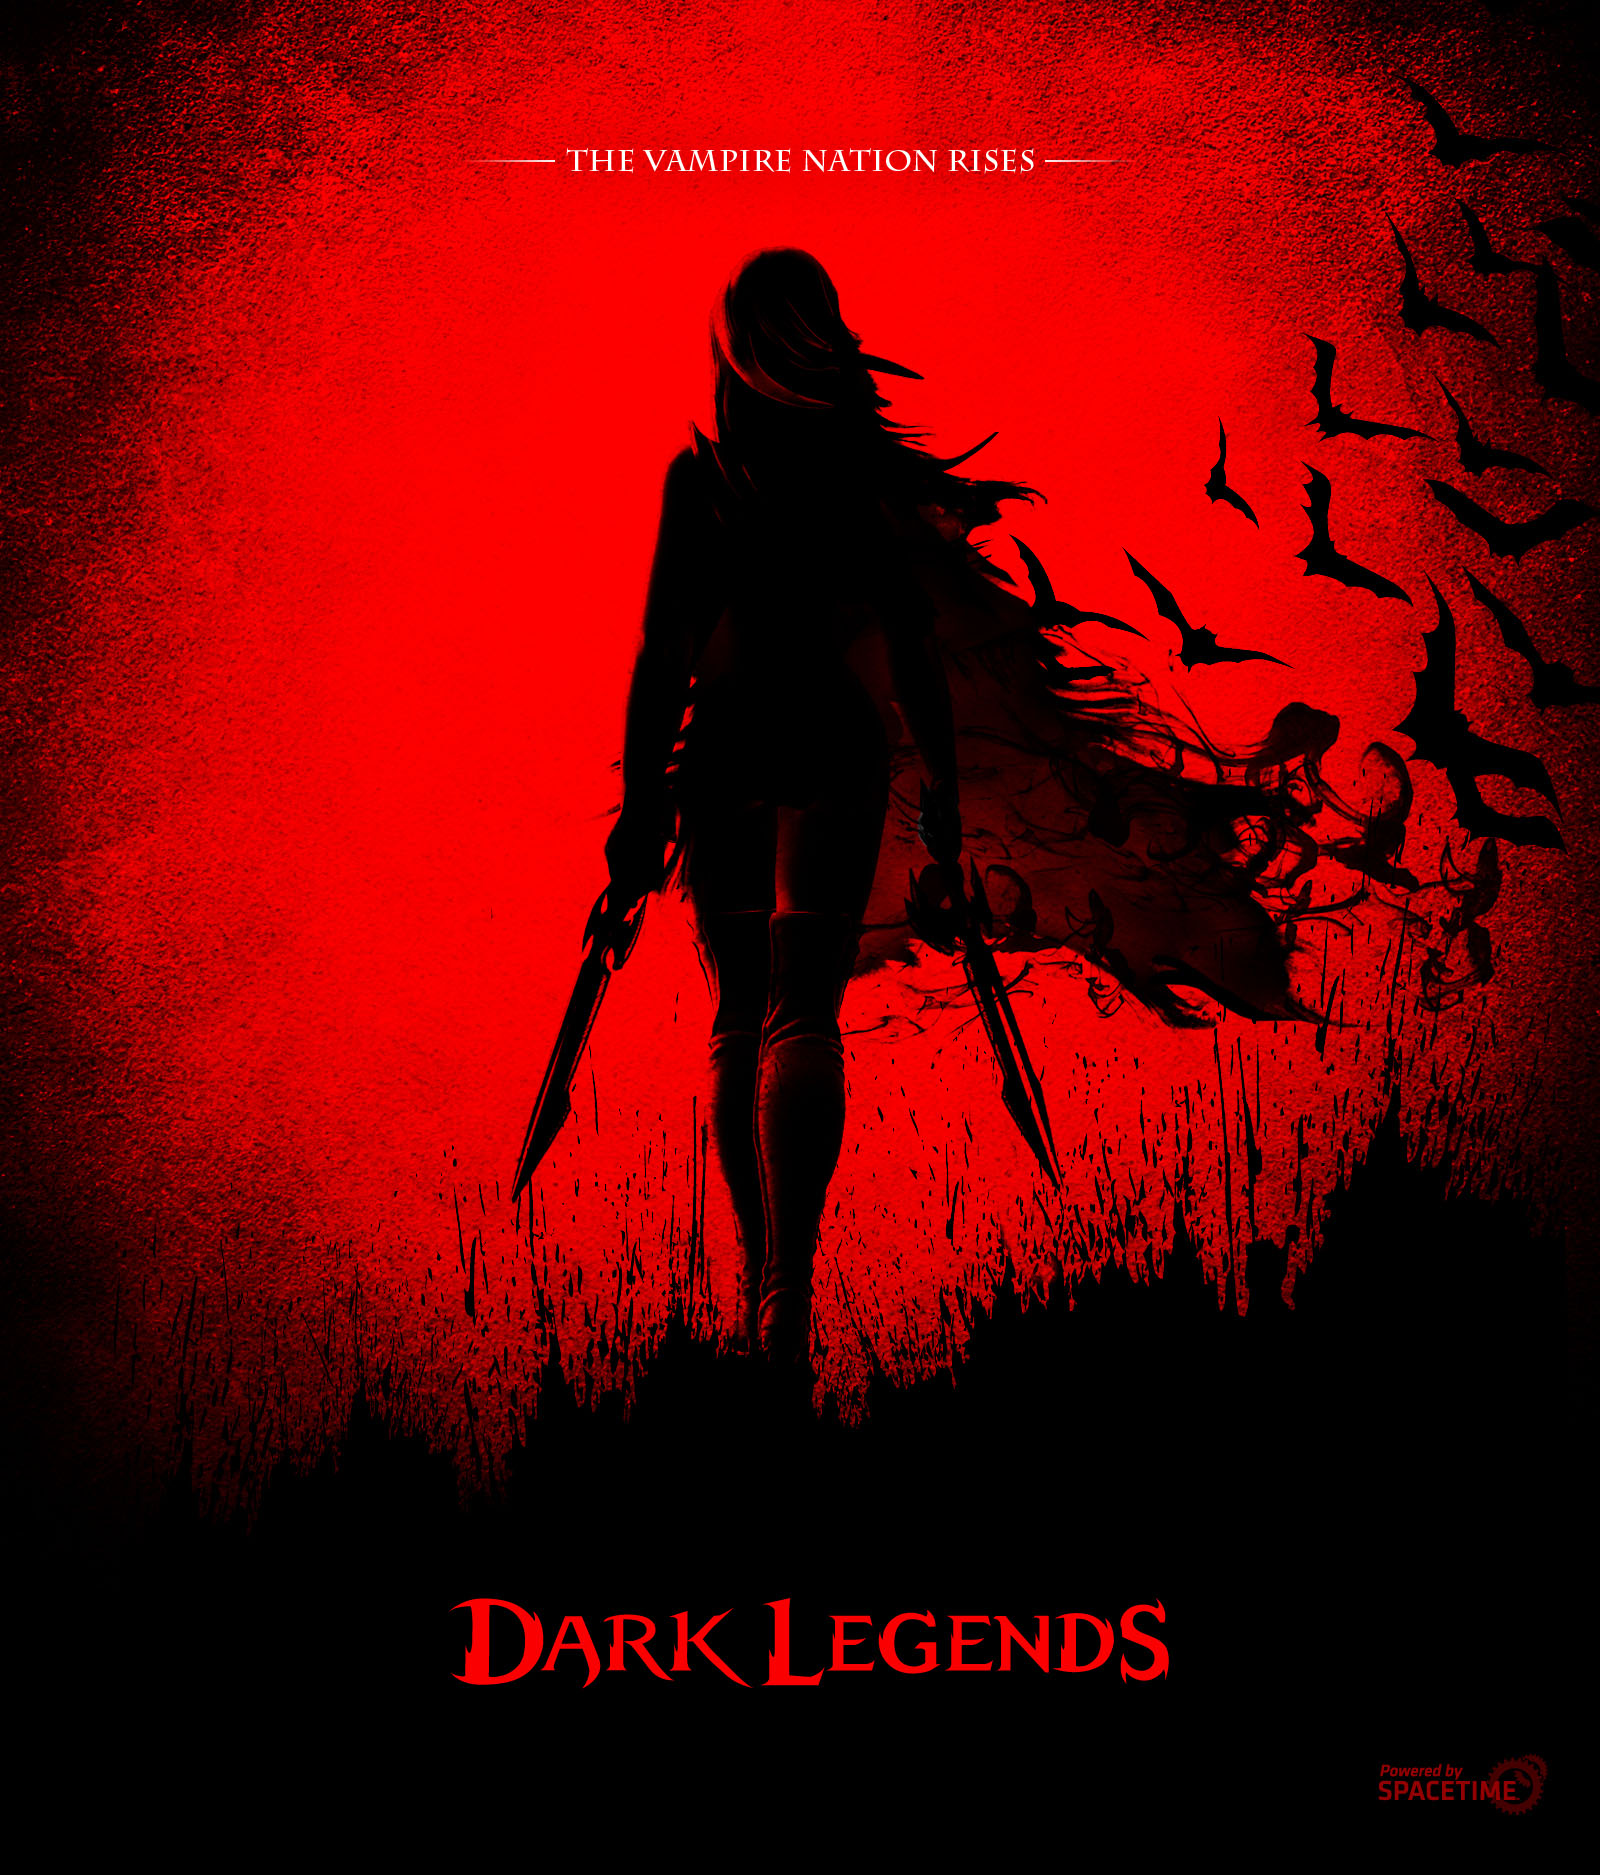 MWC 2012: Hands-on with the blood-sucking iPhone and Android MMO Dark Legends